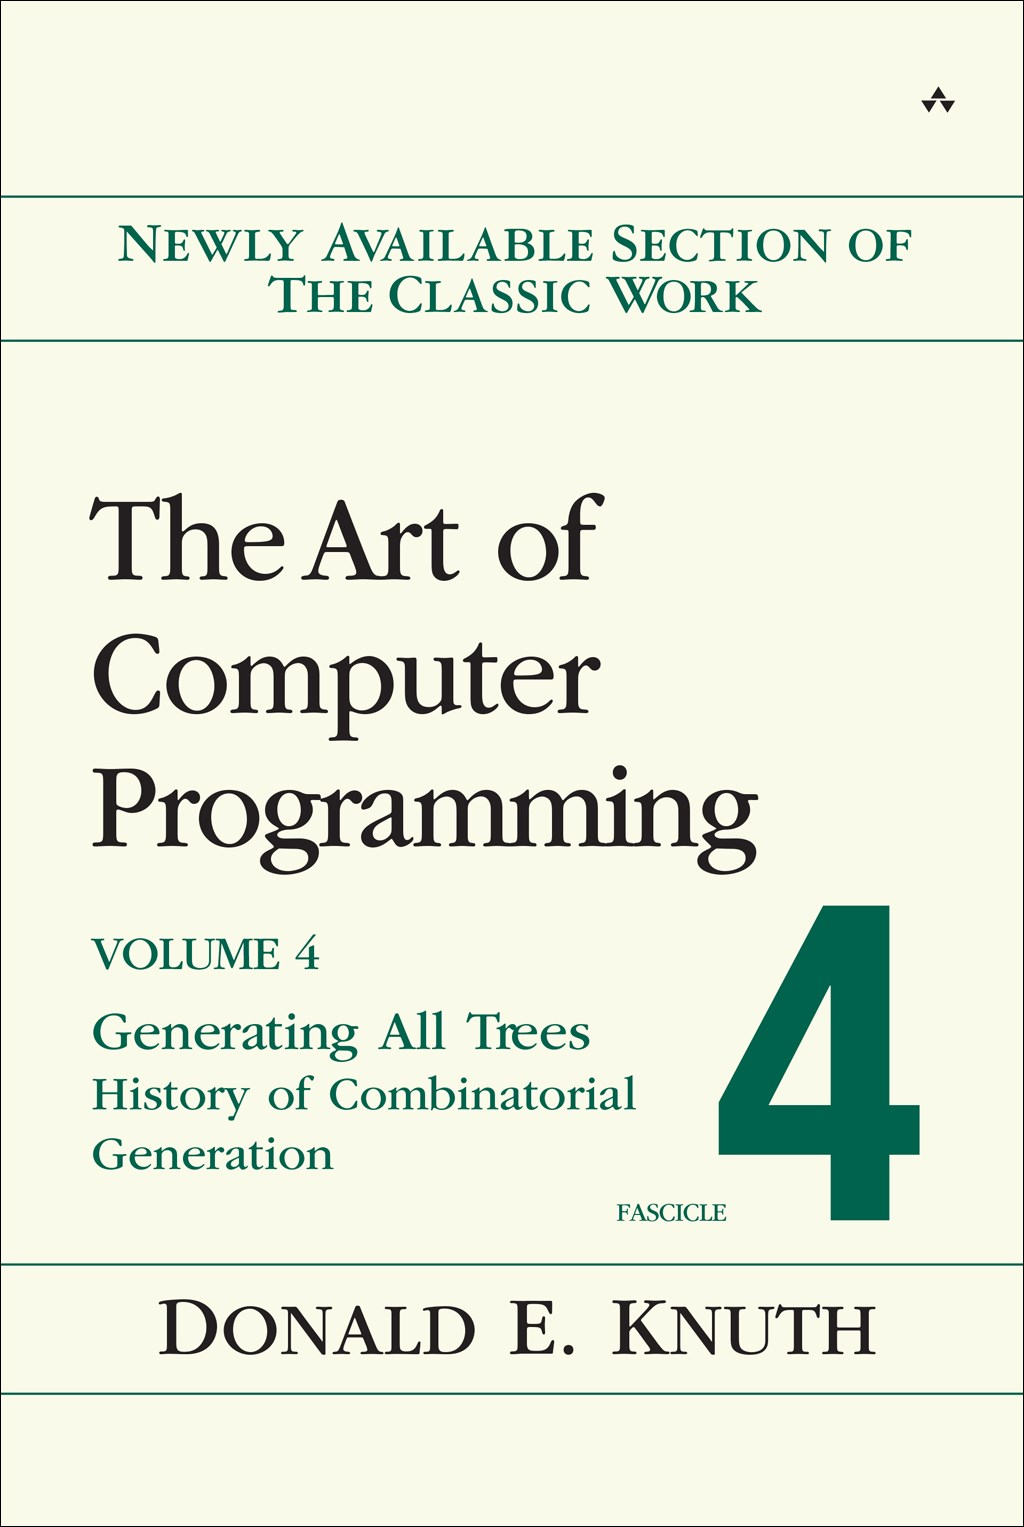 Art of Computer Programming, Volume 4, Fascicle 4,The: Generating All Trees--History of Combinatorial Generation